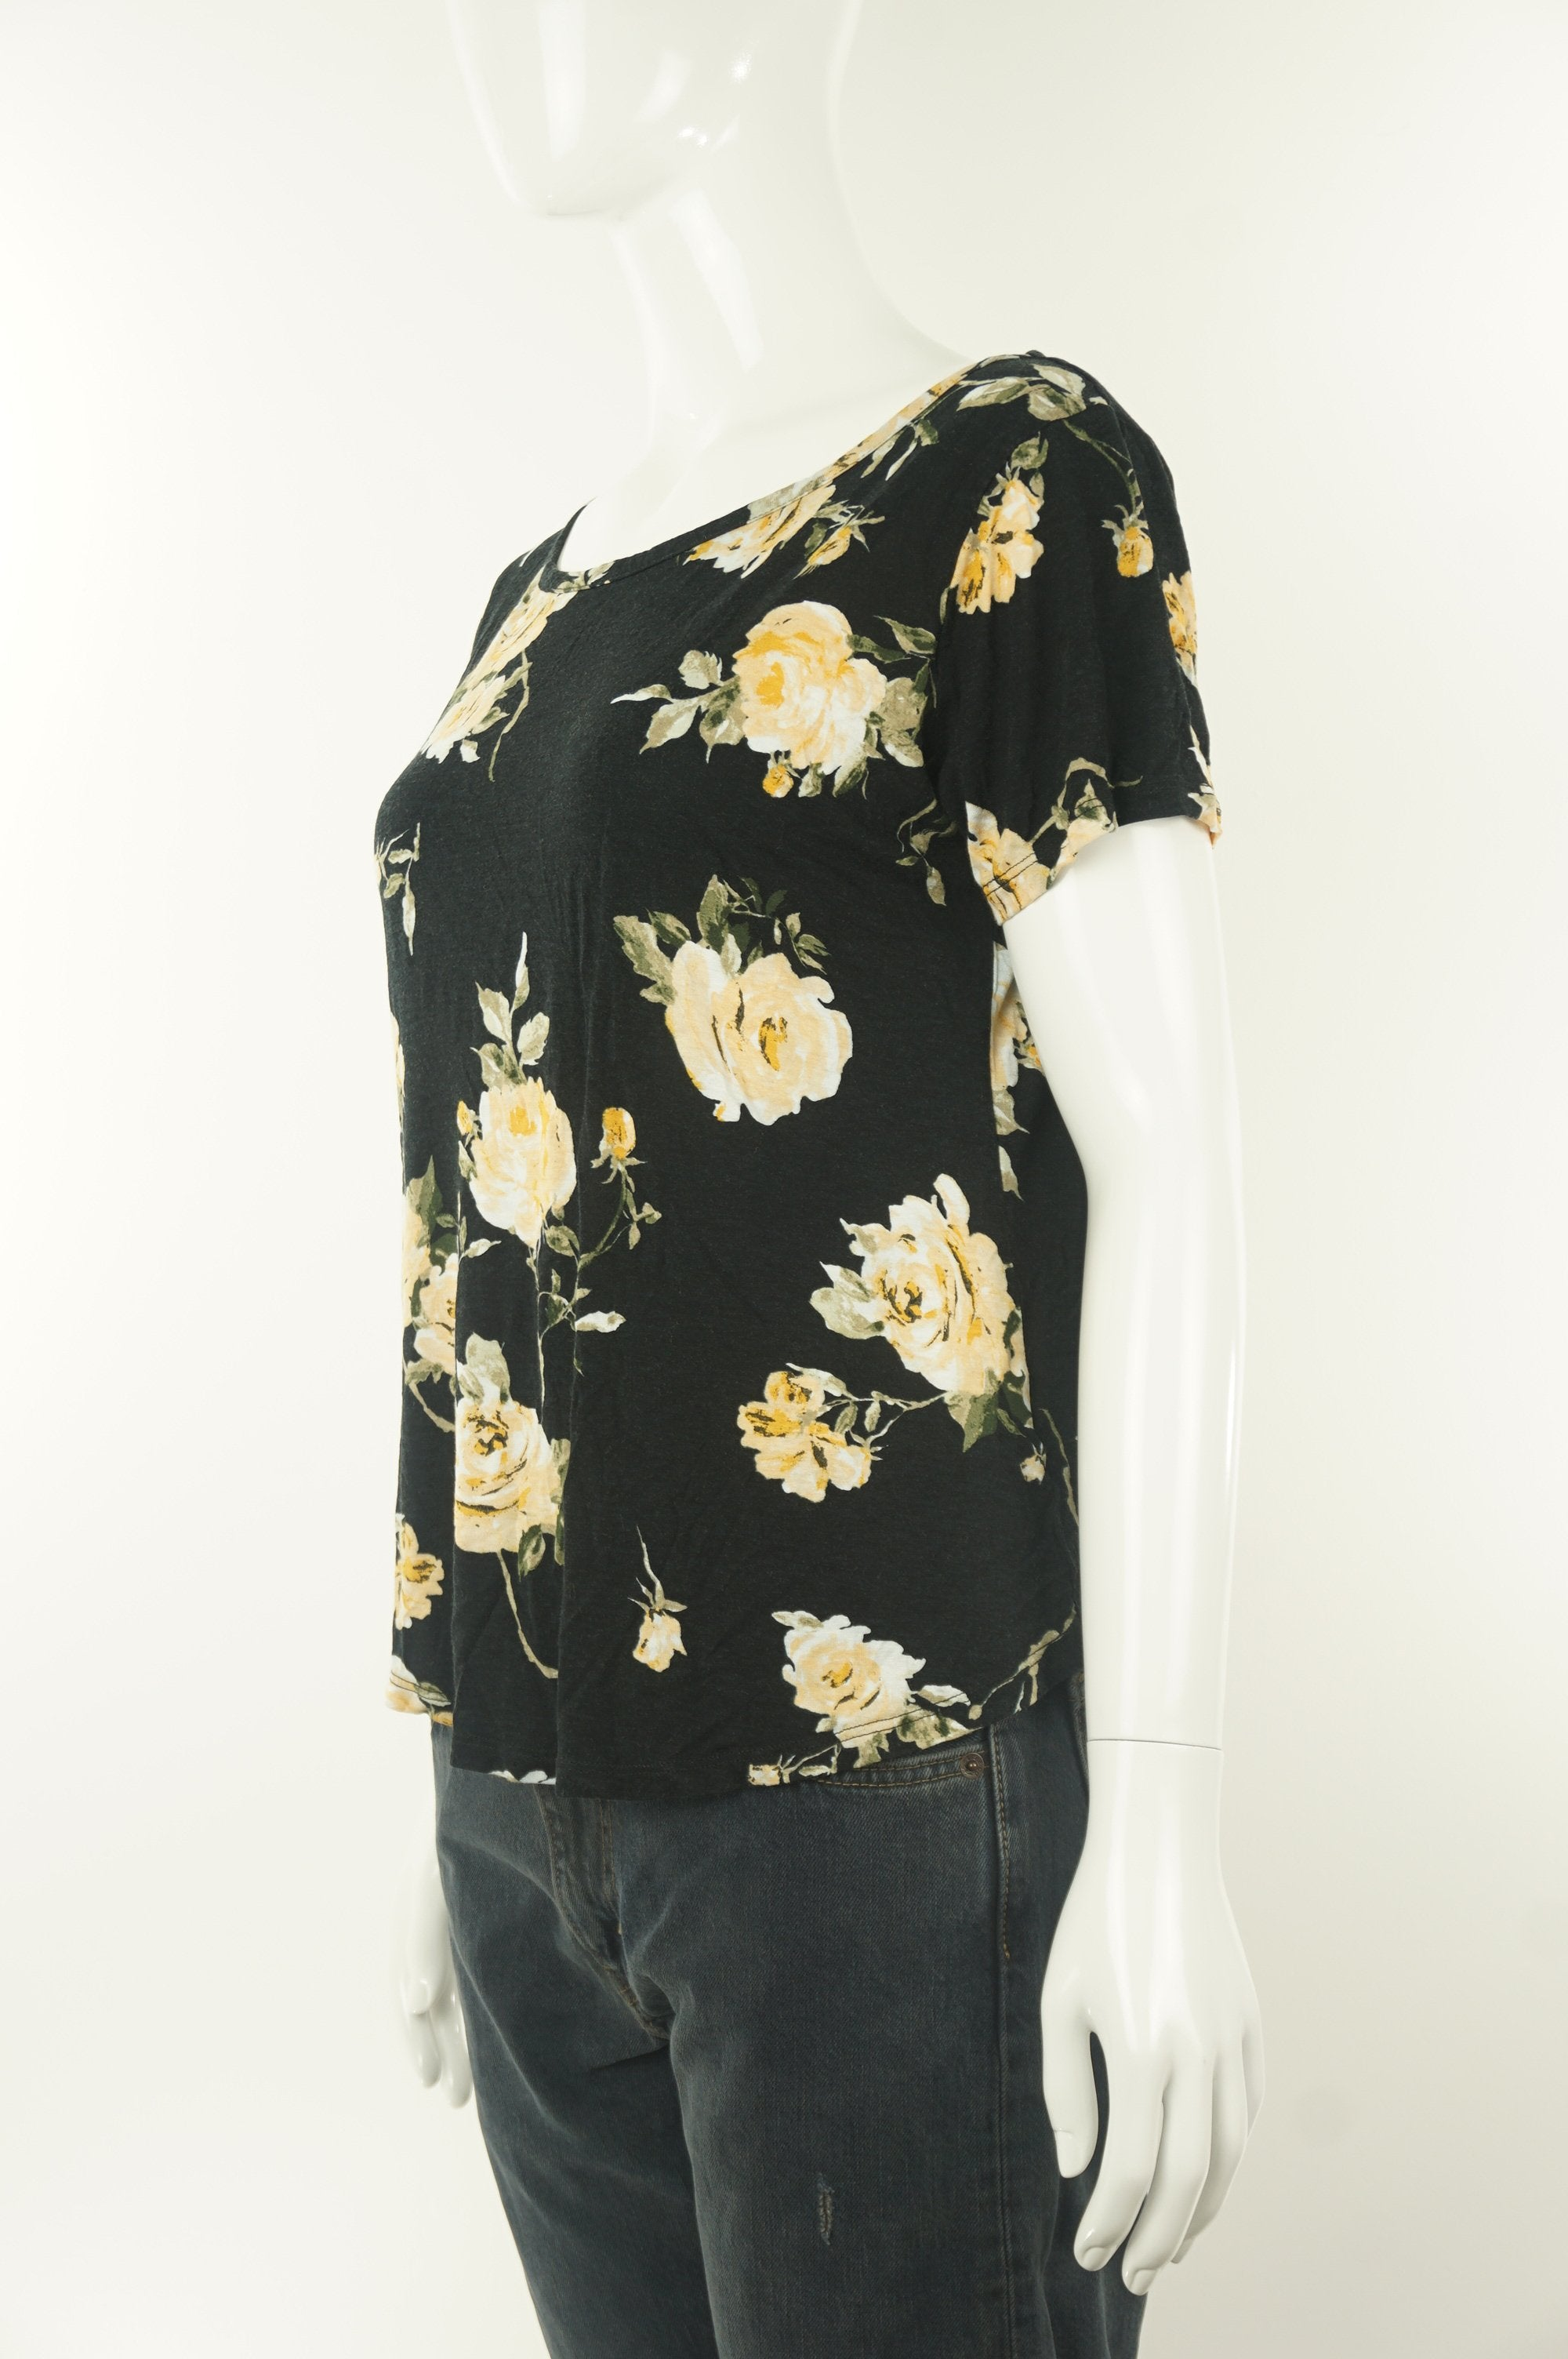 Dynamite Soft rose-patterned shirt, Get all rosy and feminine with this soft flower-pattern simple yet elegant shirt, Black, Cotton soft fabric,